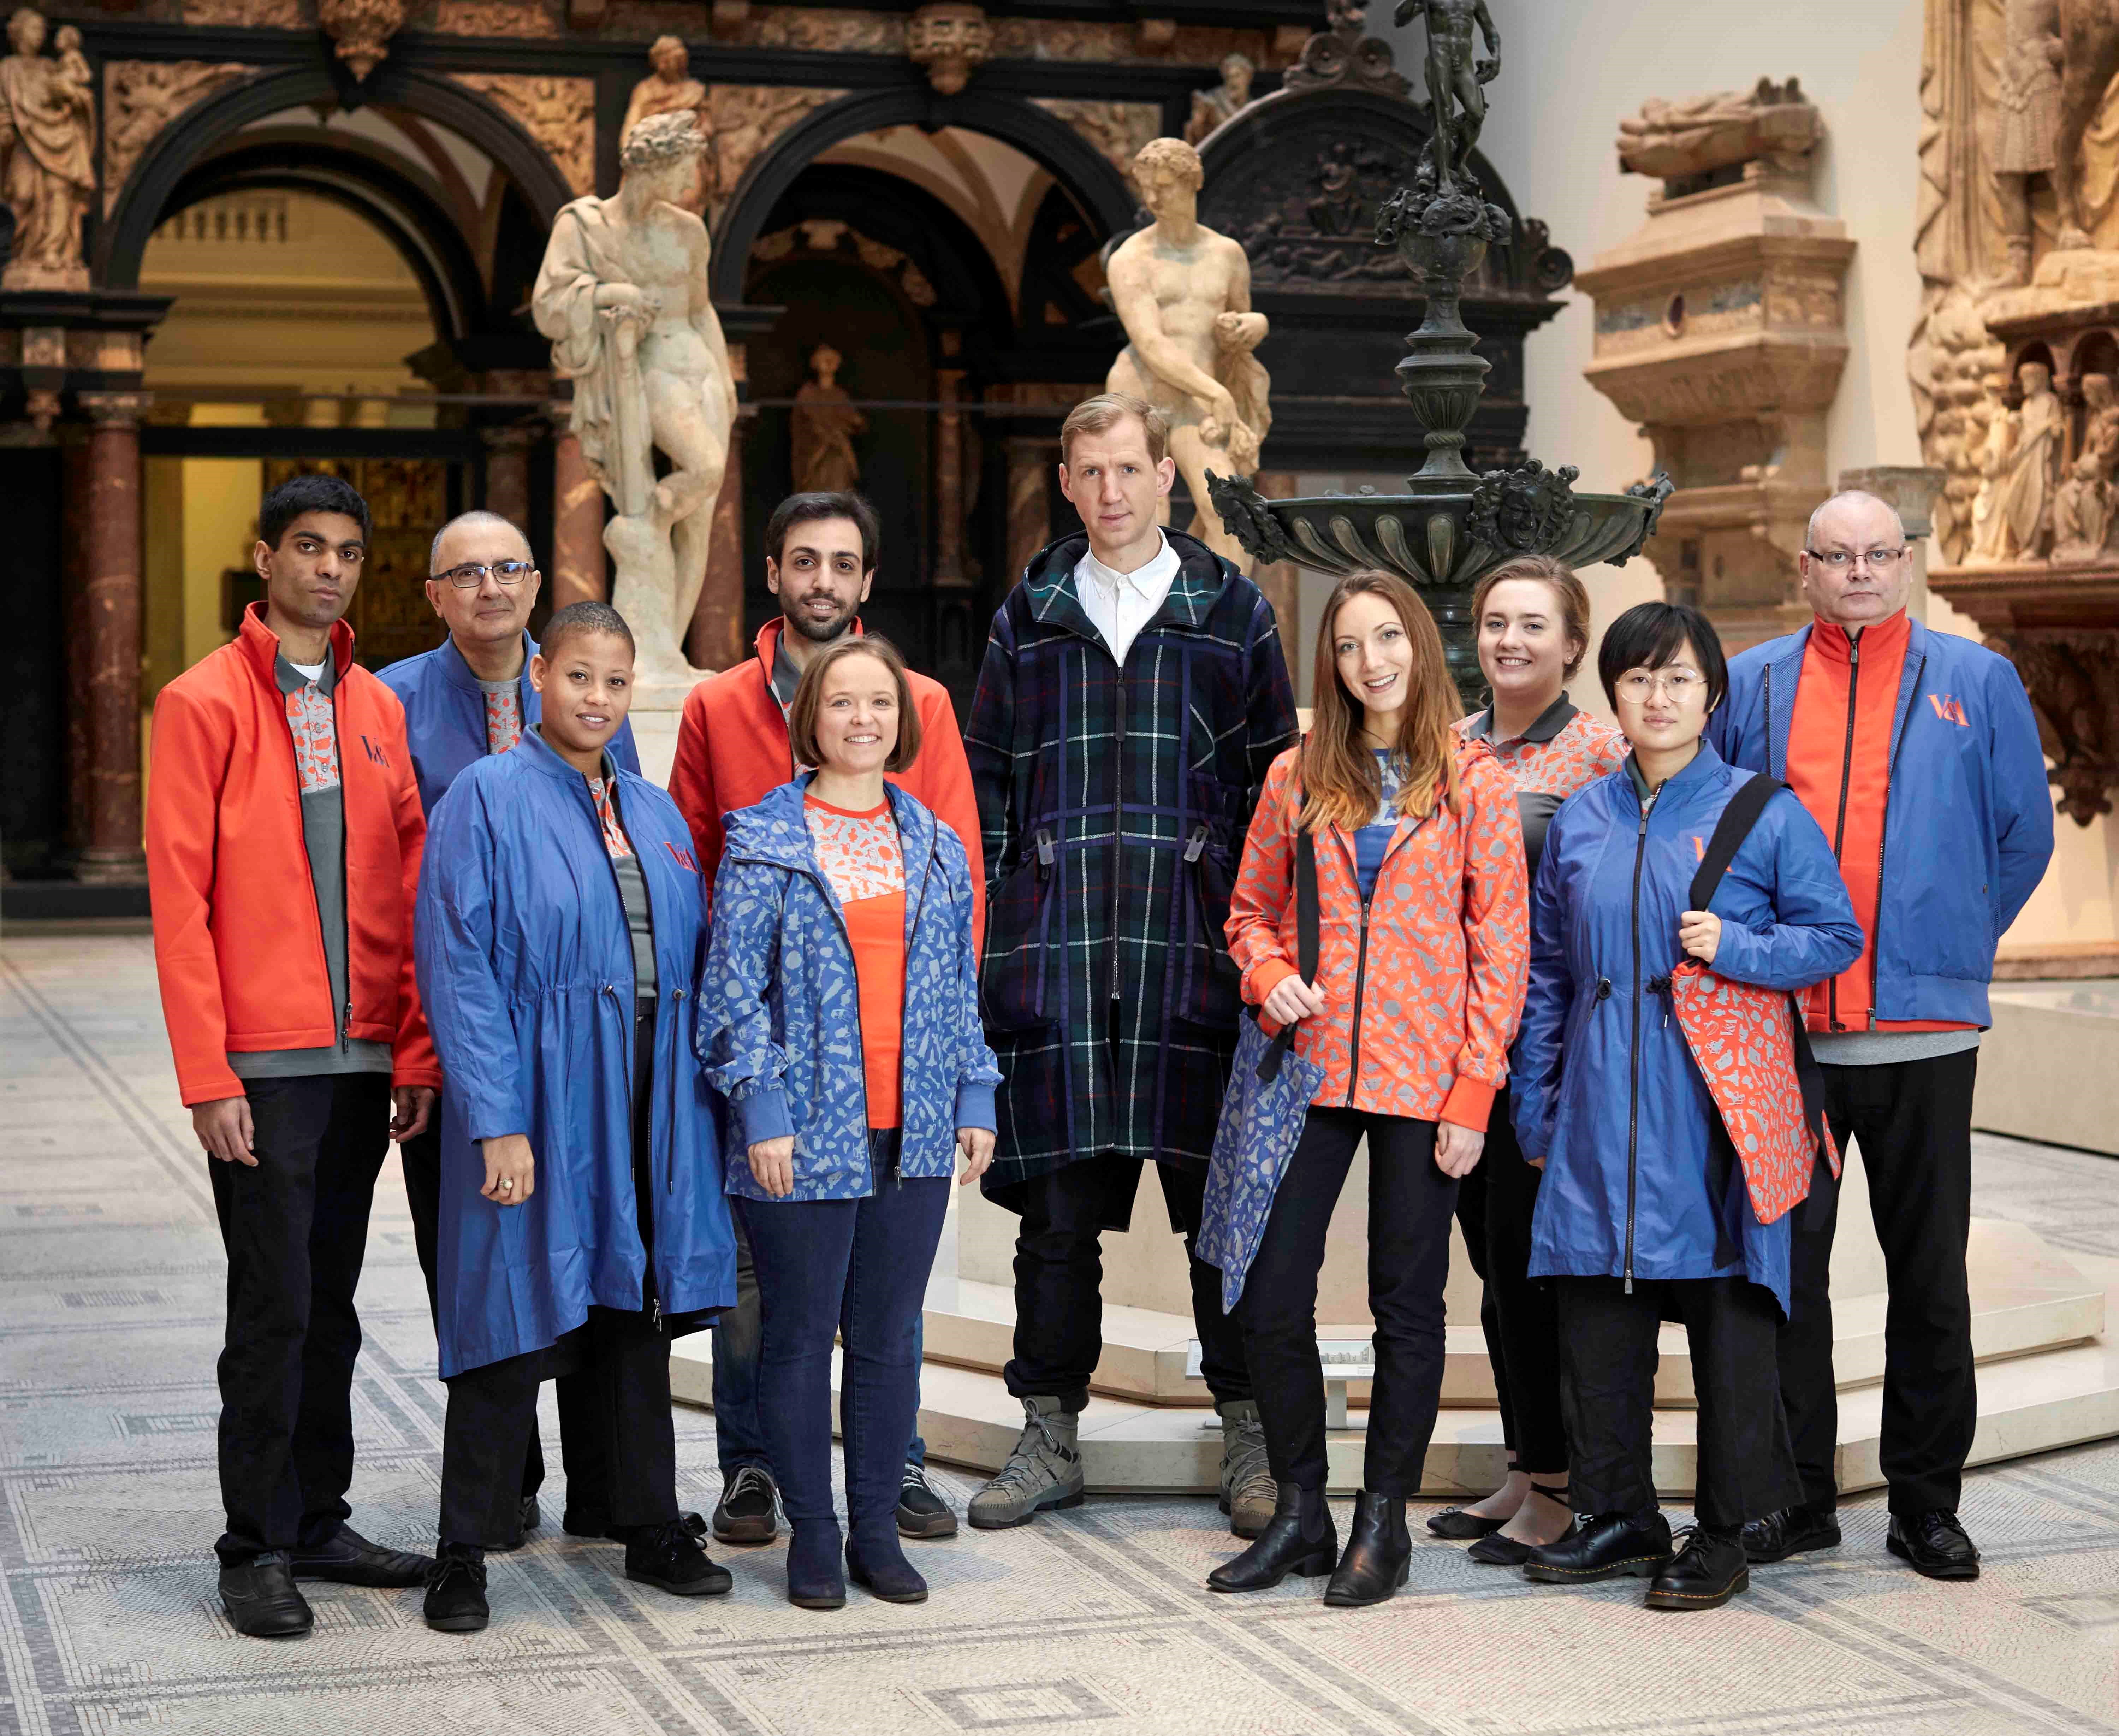 V&A unveils new staff uniforms